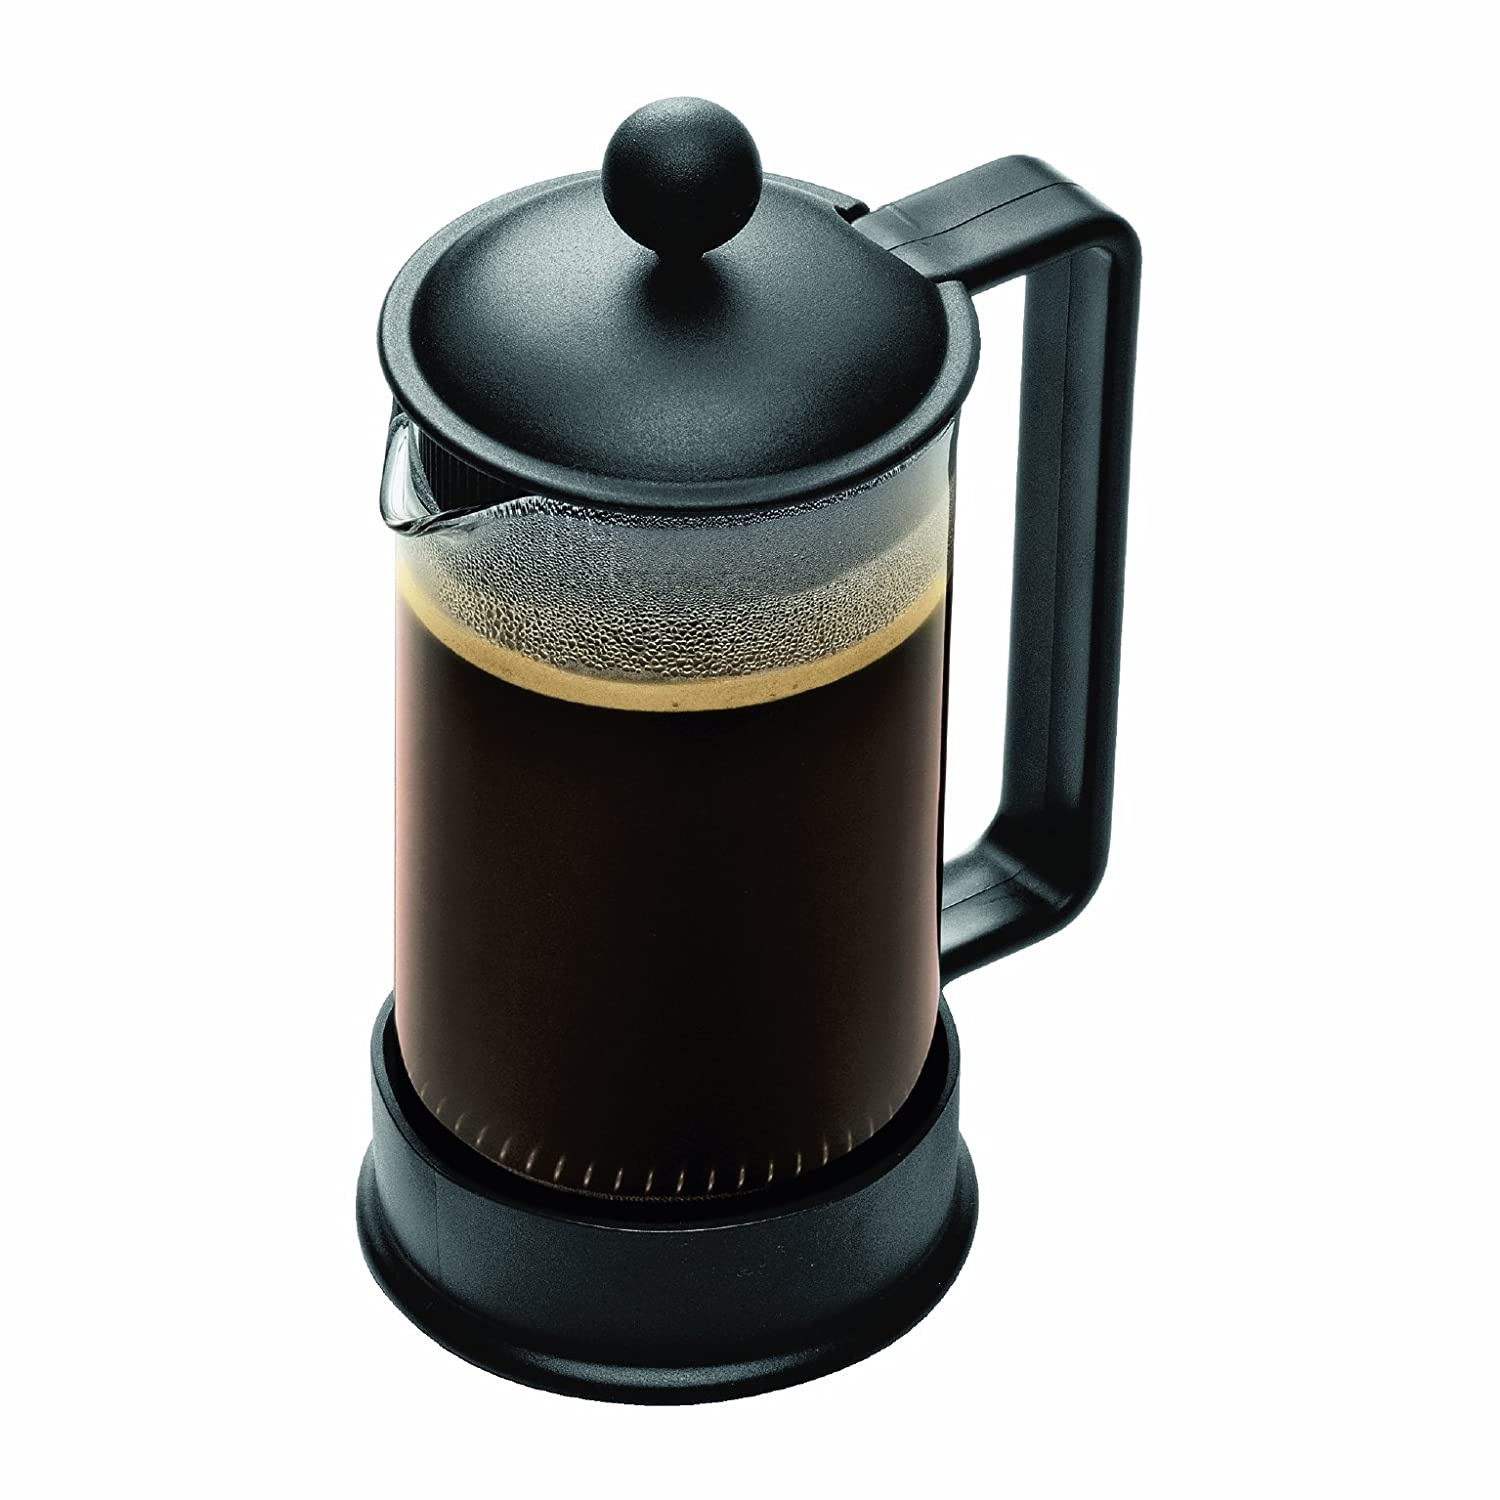 Coffee Maker Mold : These Small French Press Coffee Makers Are Pretty Slick ? Top Off My Coffee Please